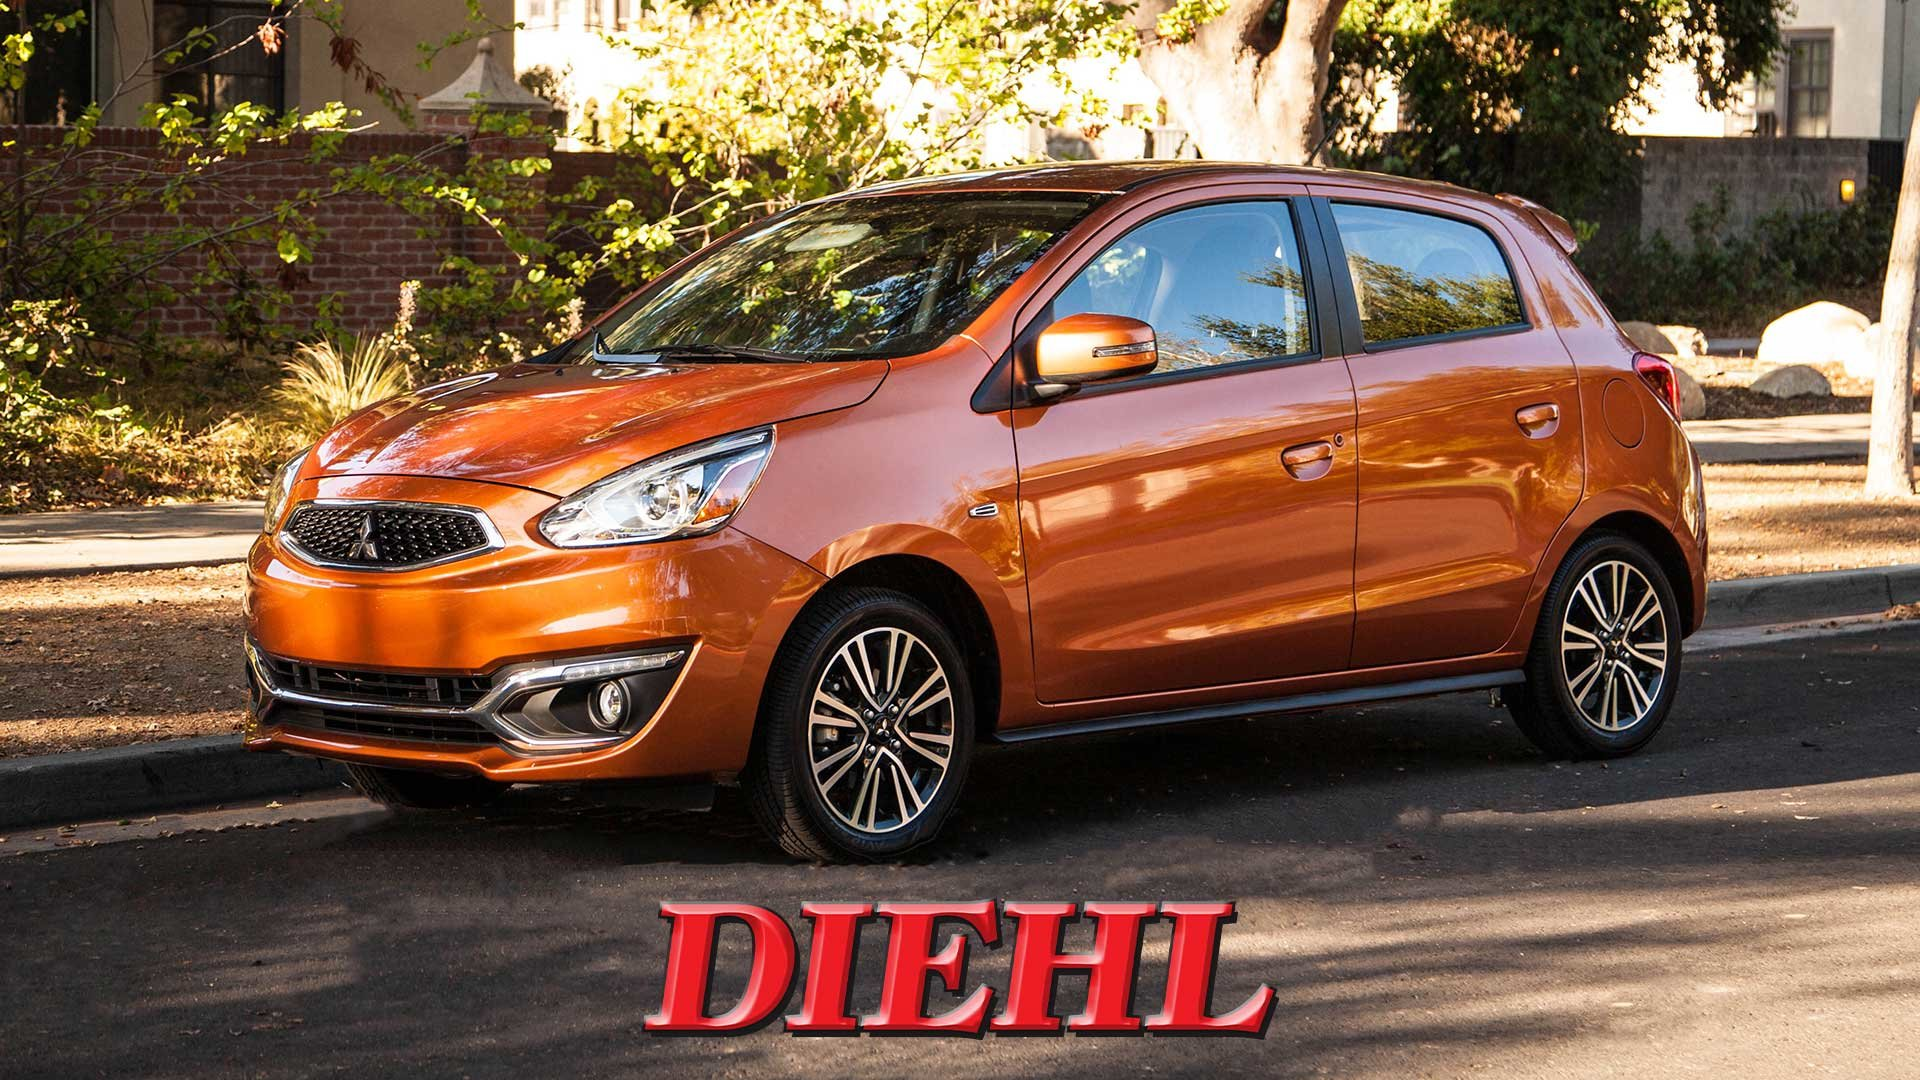 mitsubishi mirage diehl mitubishi butler diehl automotive affordable comfort safety